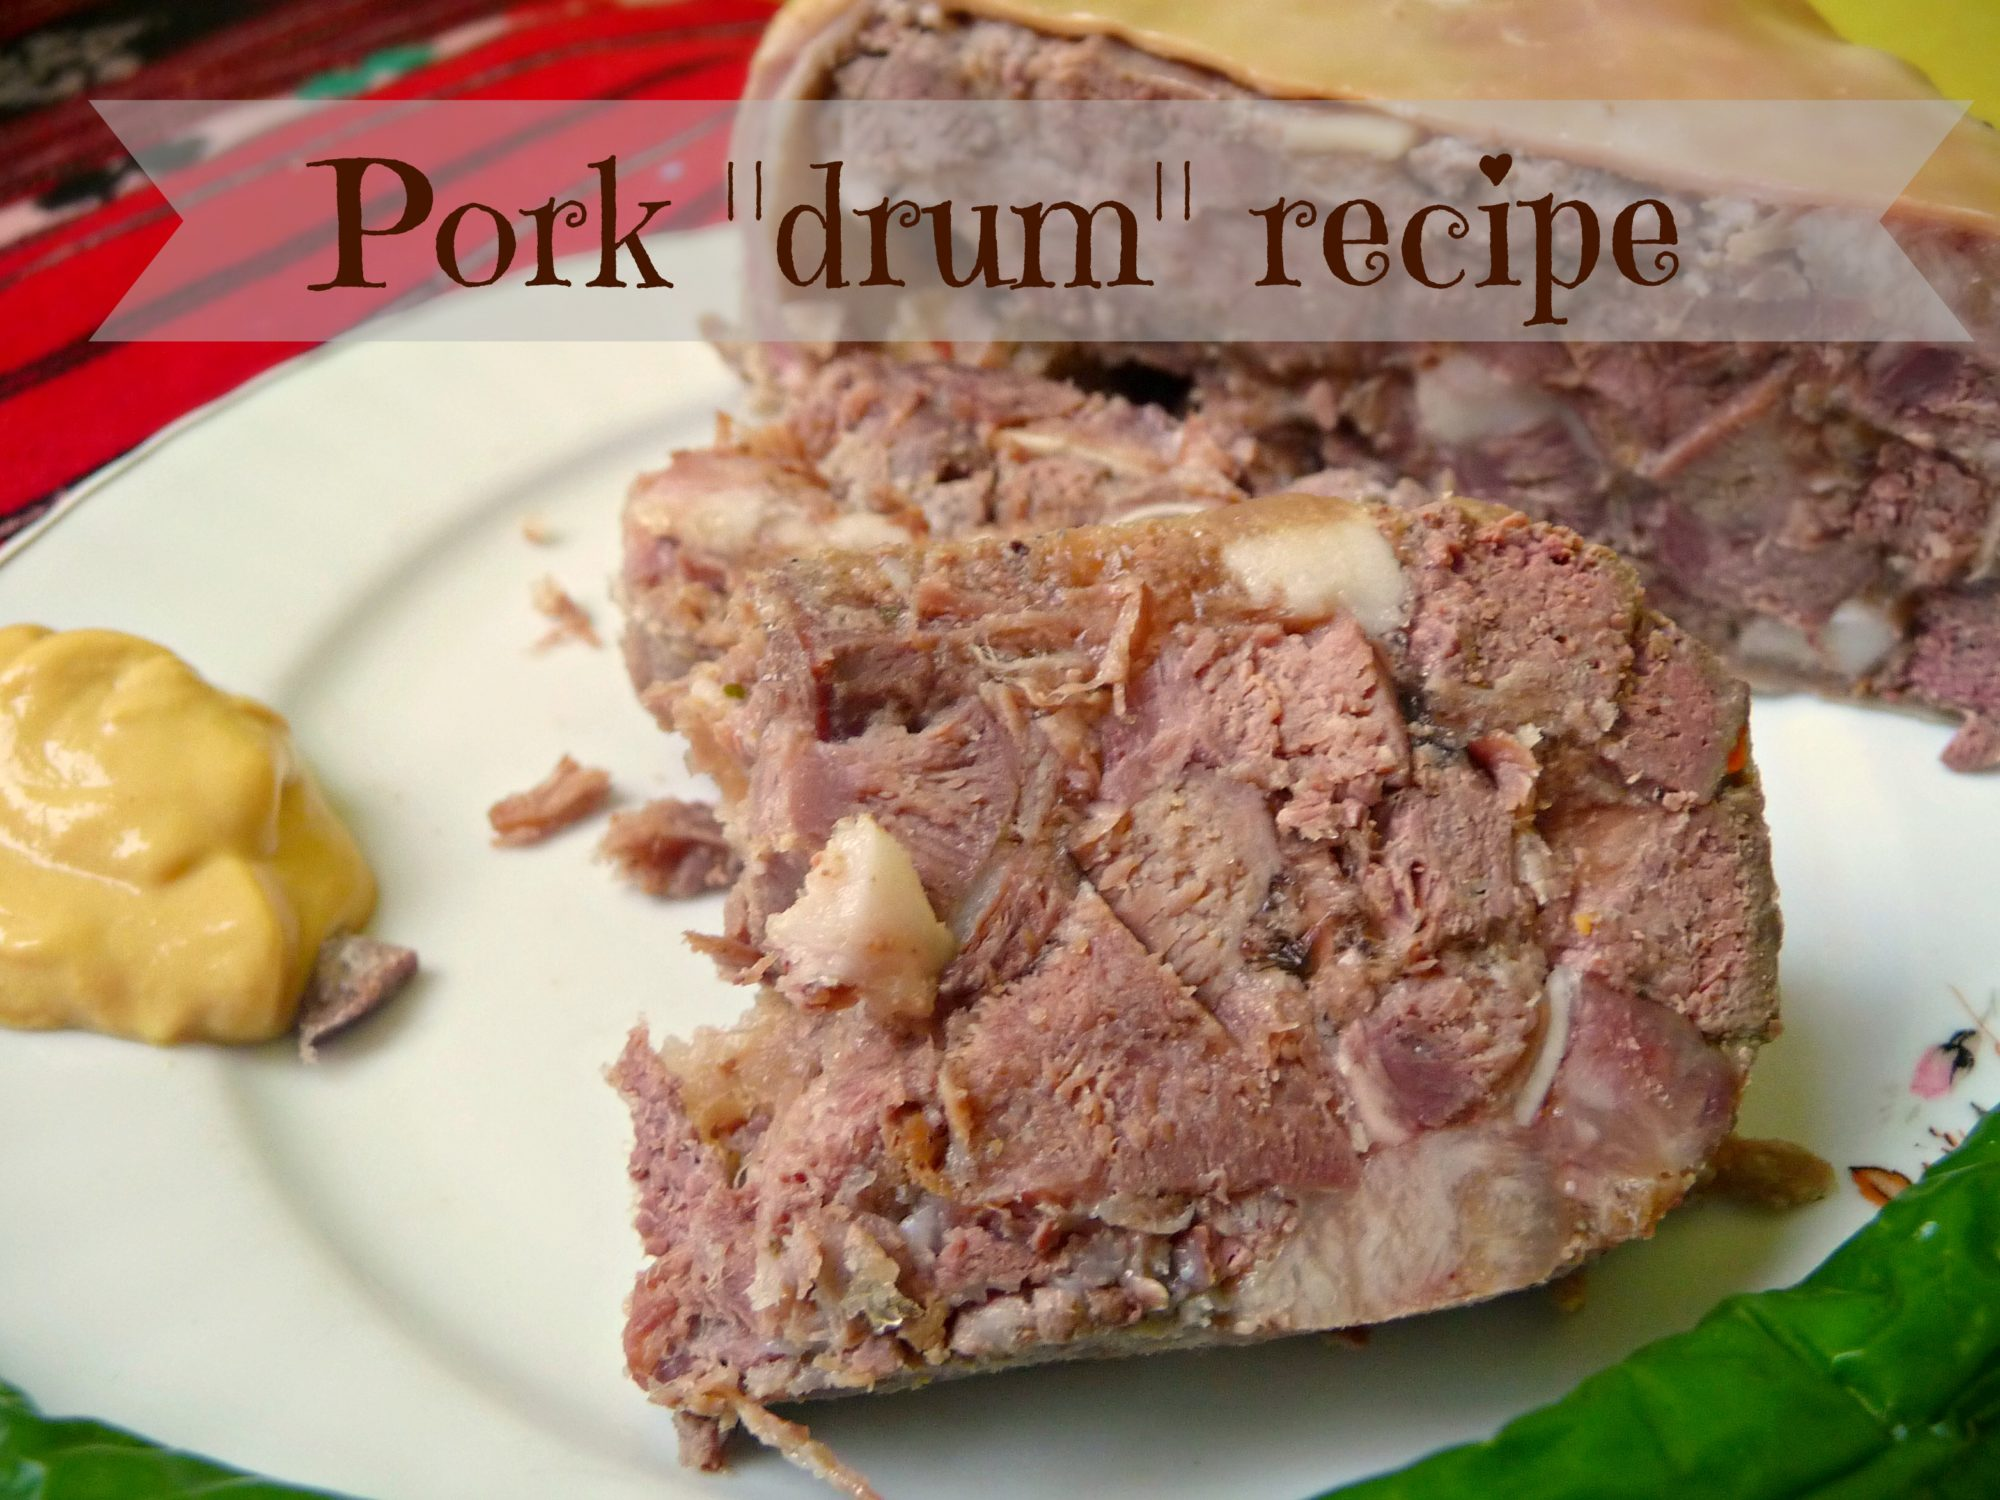 Pork drum recipe